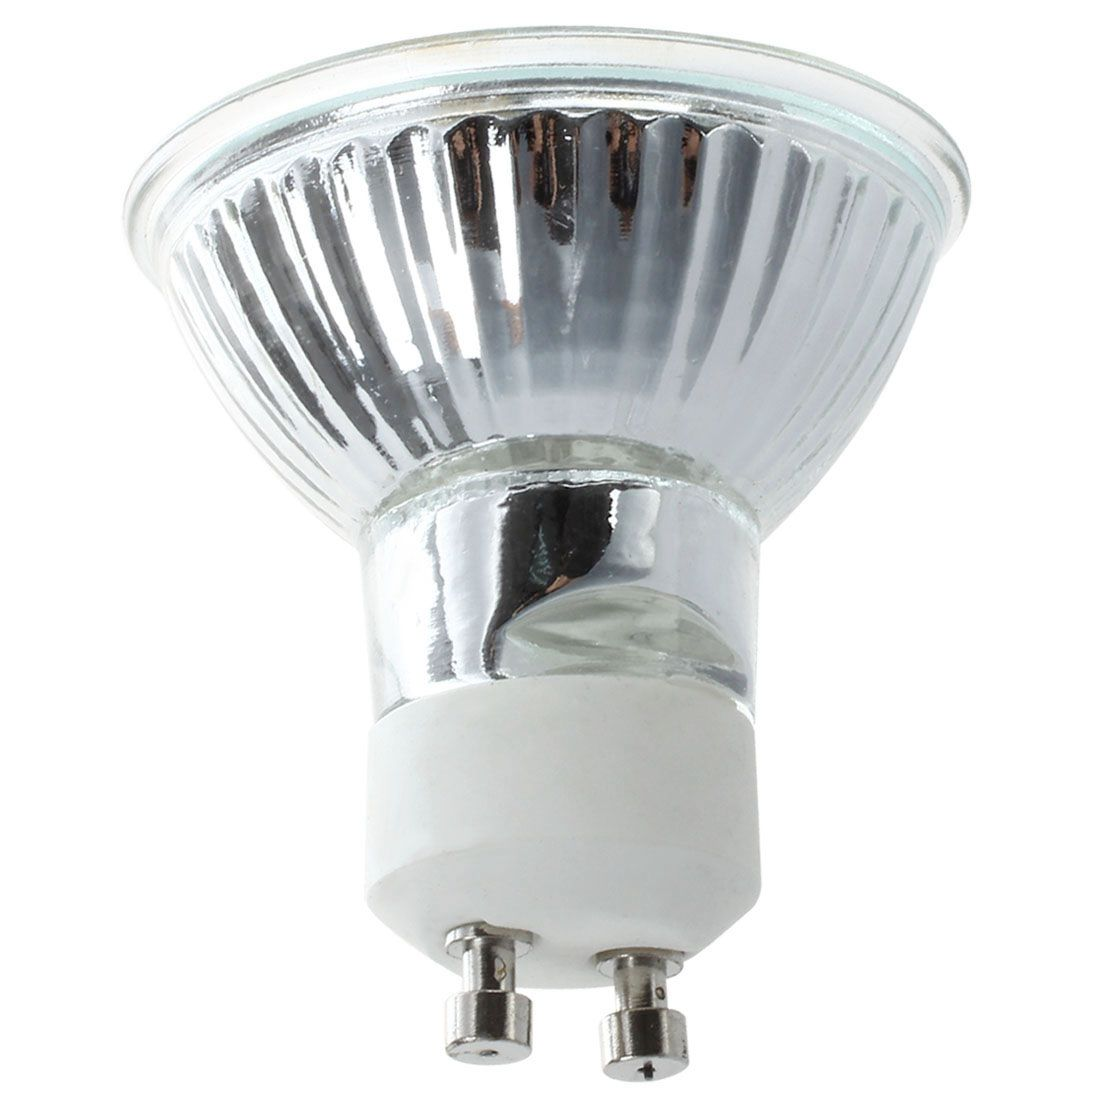 New Halogen Lamp Light Lamp Super Hell GU 10 + C 50W 220V